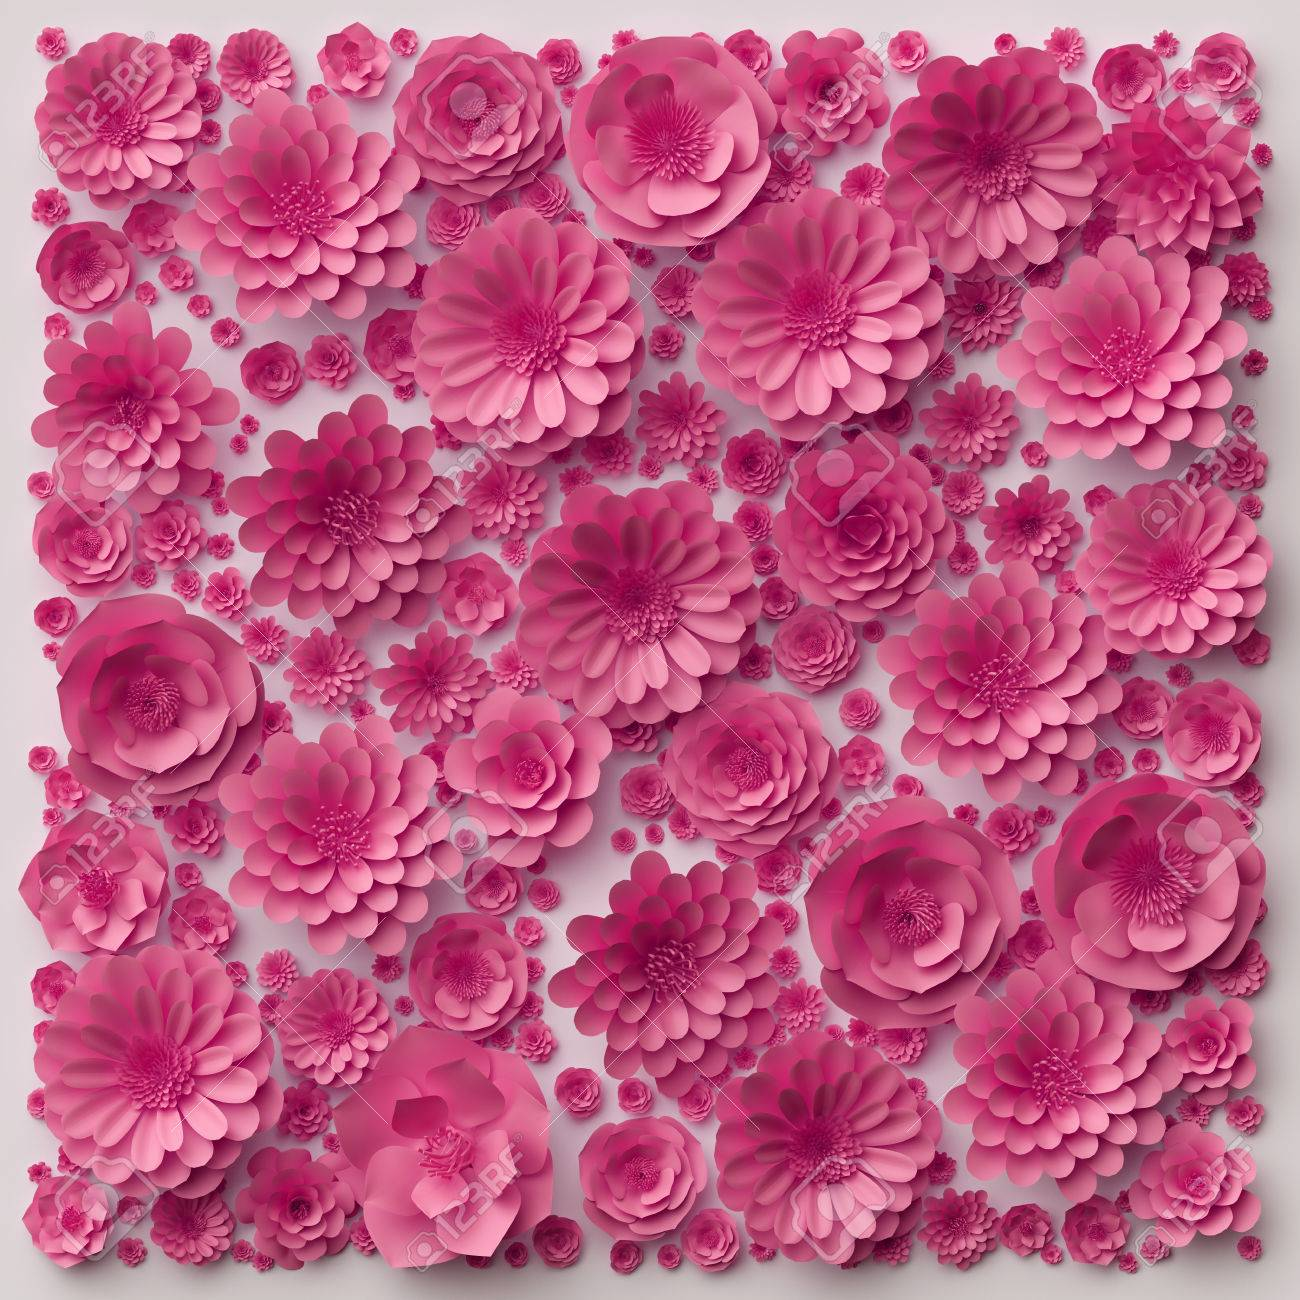 3d Illustration Pink Paper Flowers Wallpaper Floral Background